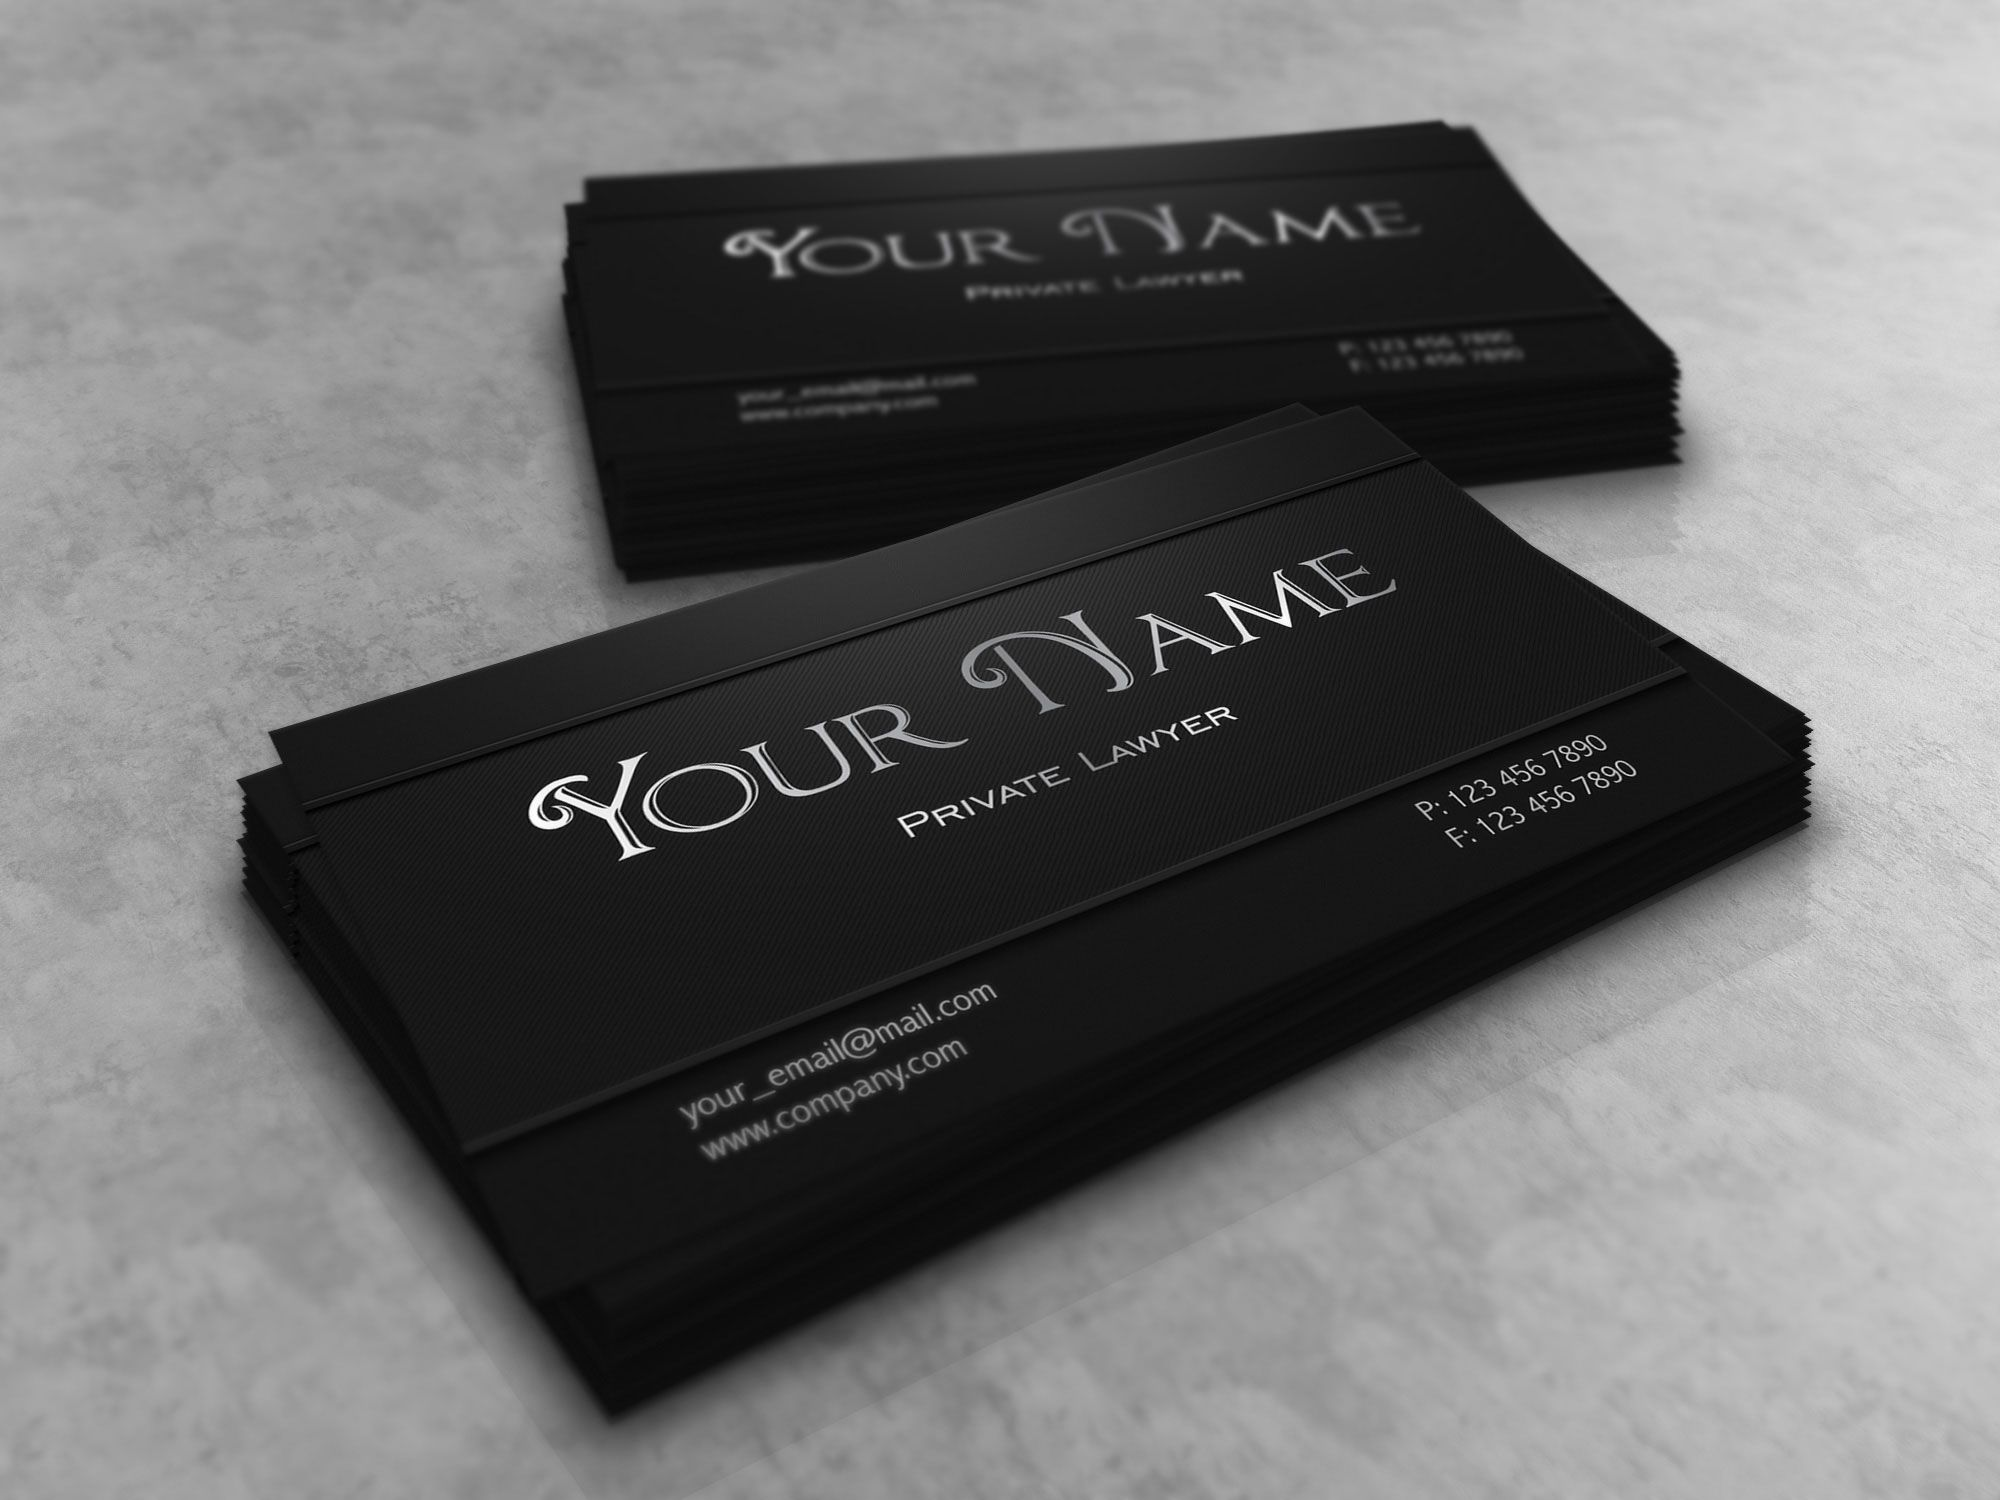 Dark lawyer business card template more at designresources dark lawyer business card template more at designresources fbccfo Images